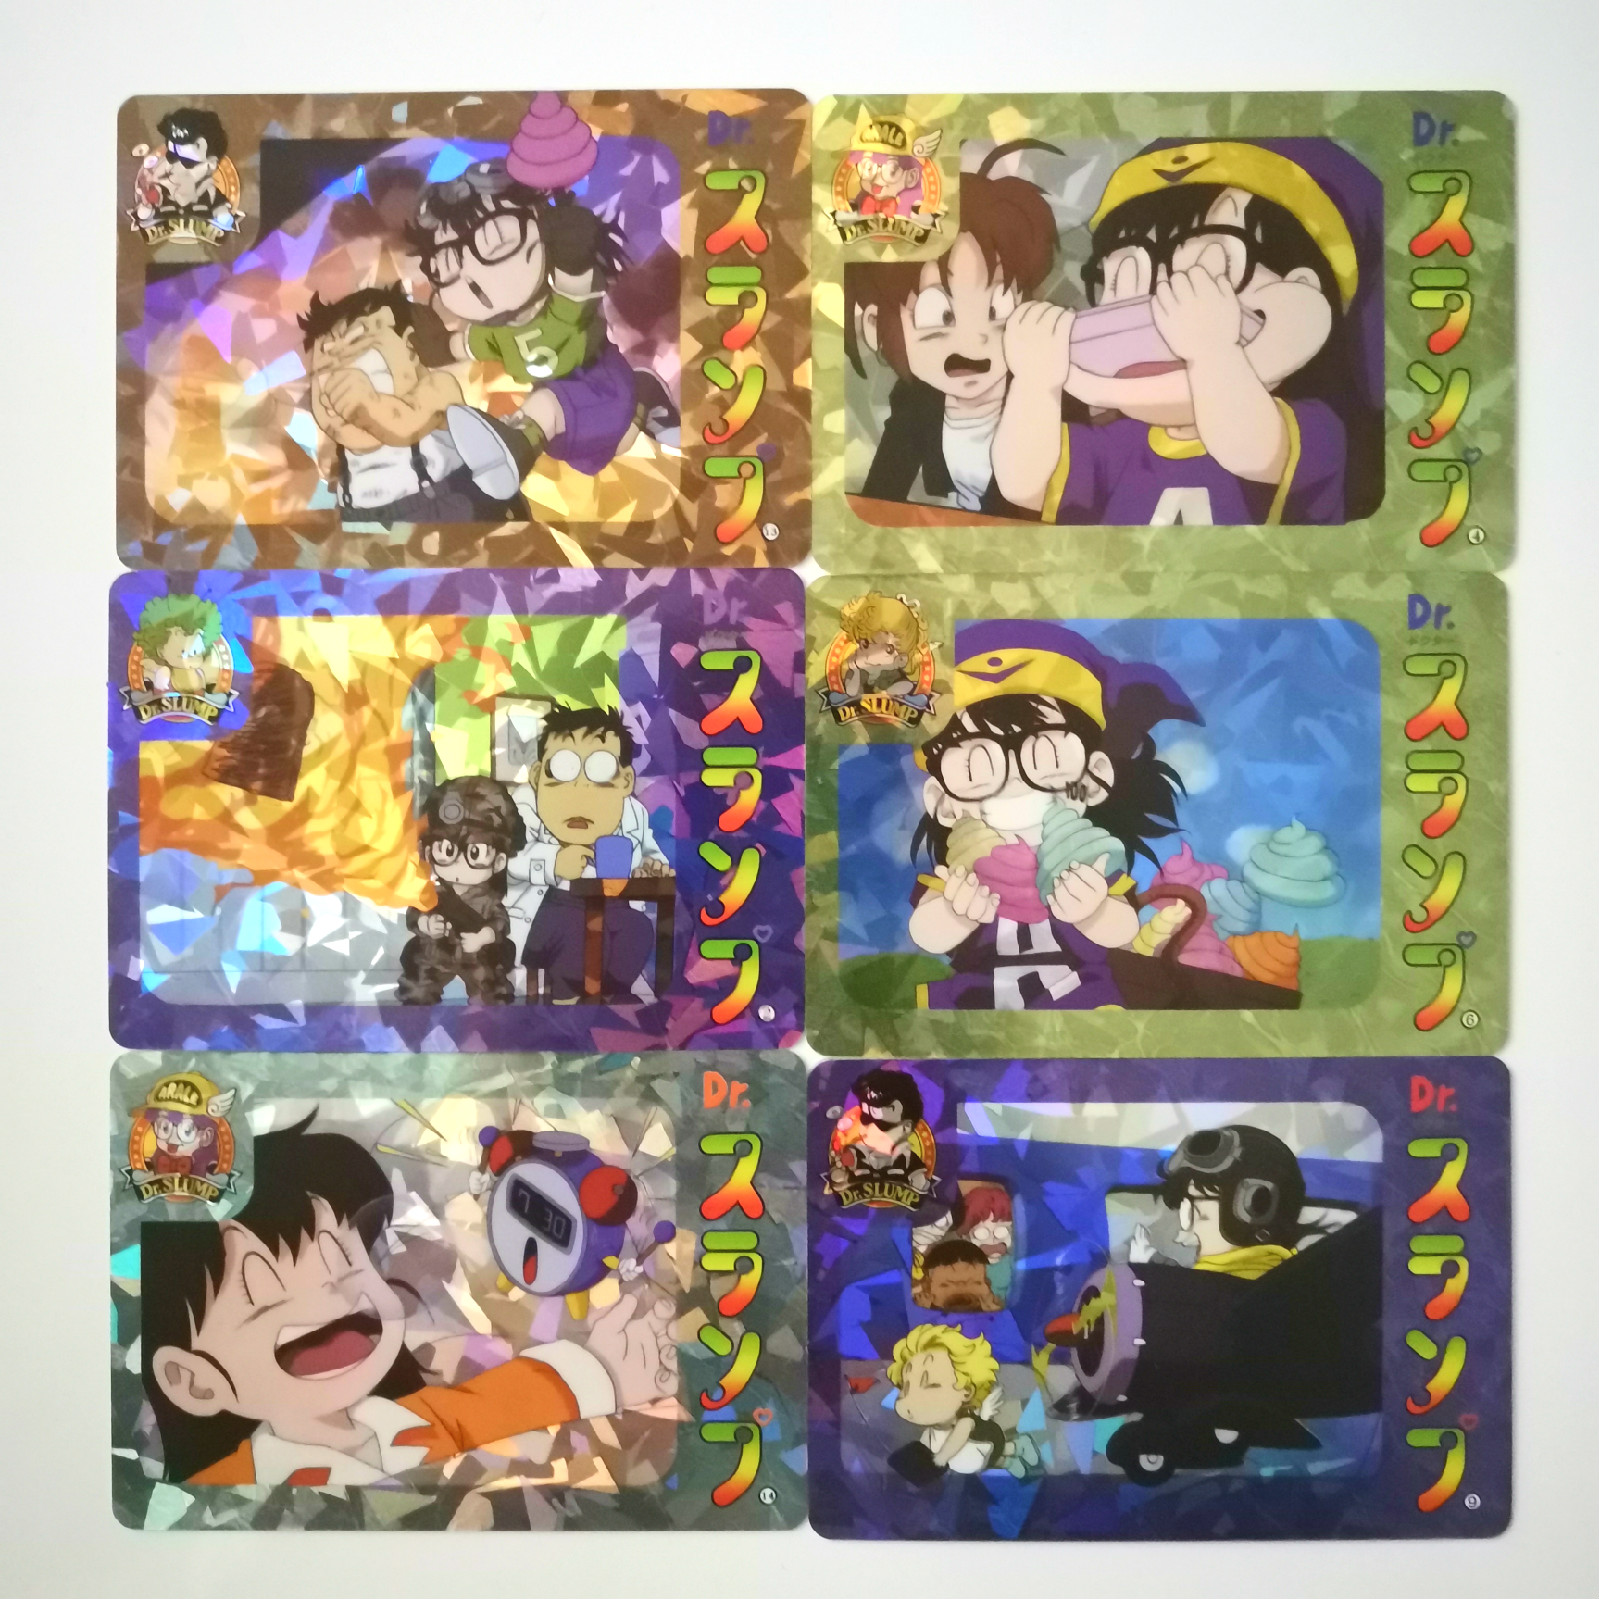 30pcs/set Arale Drama Card Season 1 Sets Heroes Battle Card Collection Anime Cards